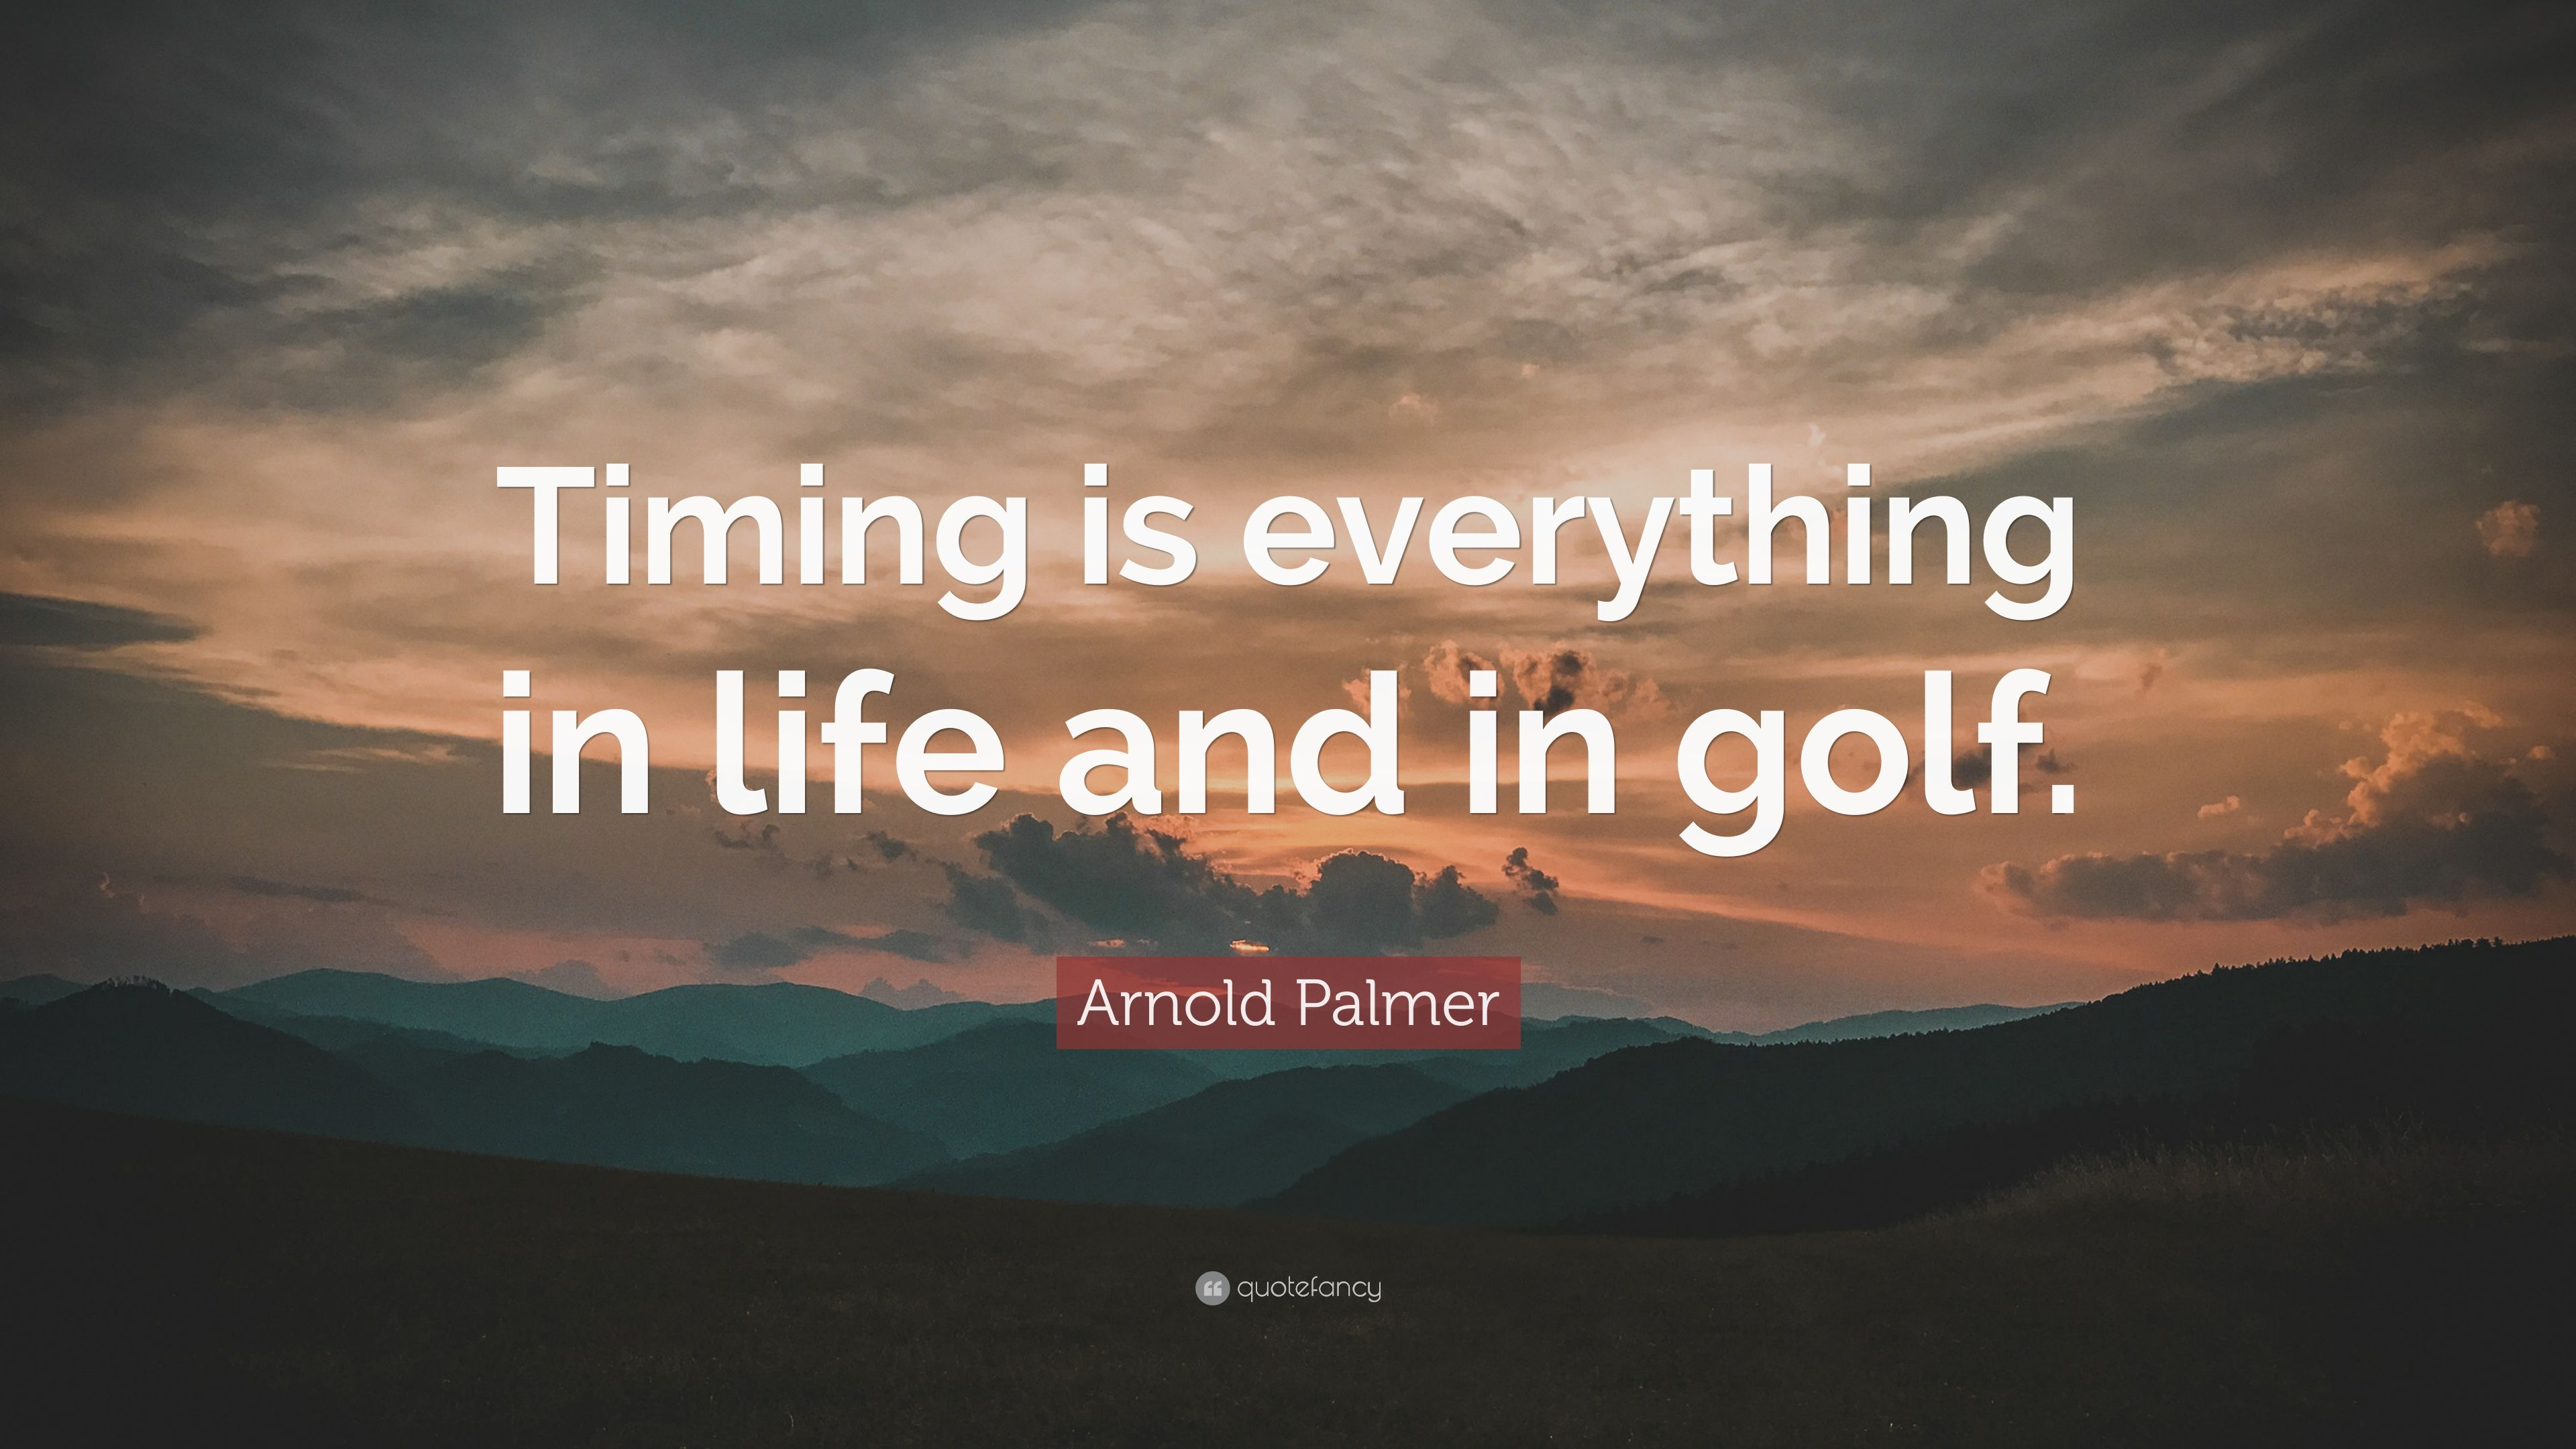 timing is everything quote